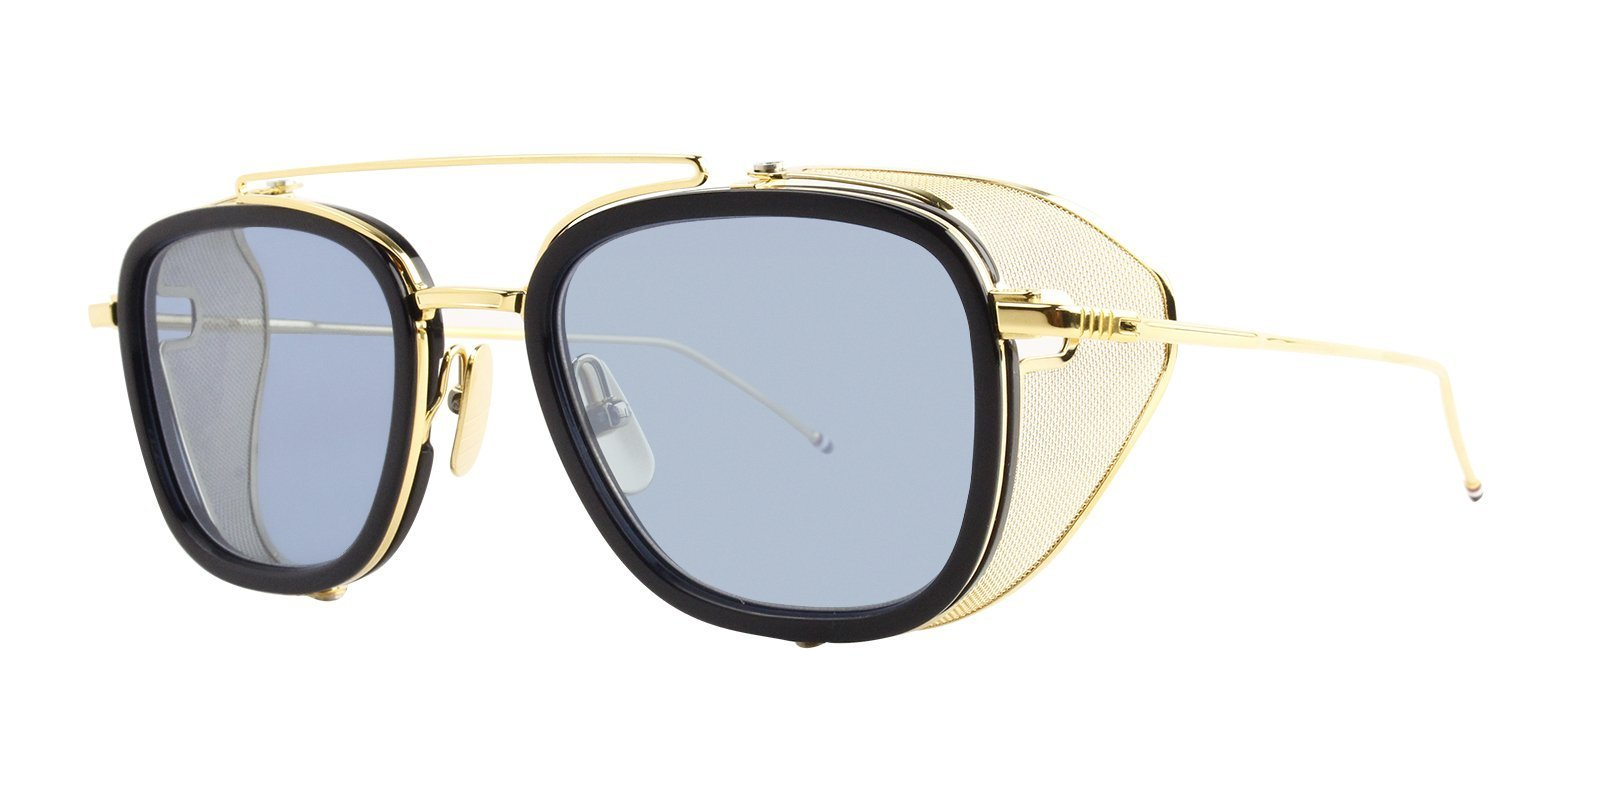 69605087ee thom-browne-sunglasses-thom-browne-tb-808-navy-yellow-gold-dark-blue ...